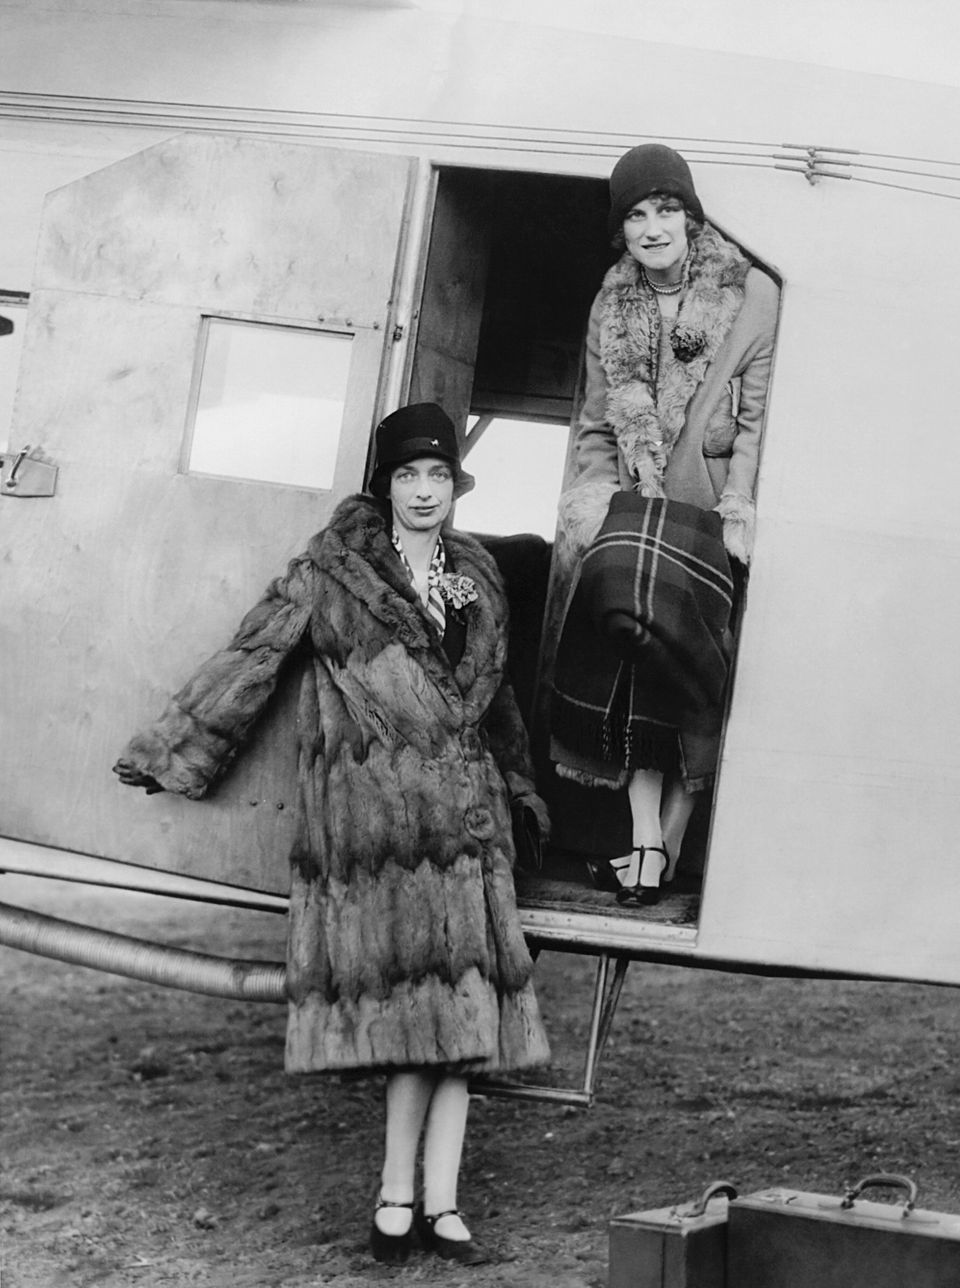 The official opening of an airline passenger service between Boston and New York took place when the first two women to make